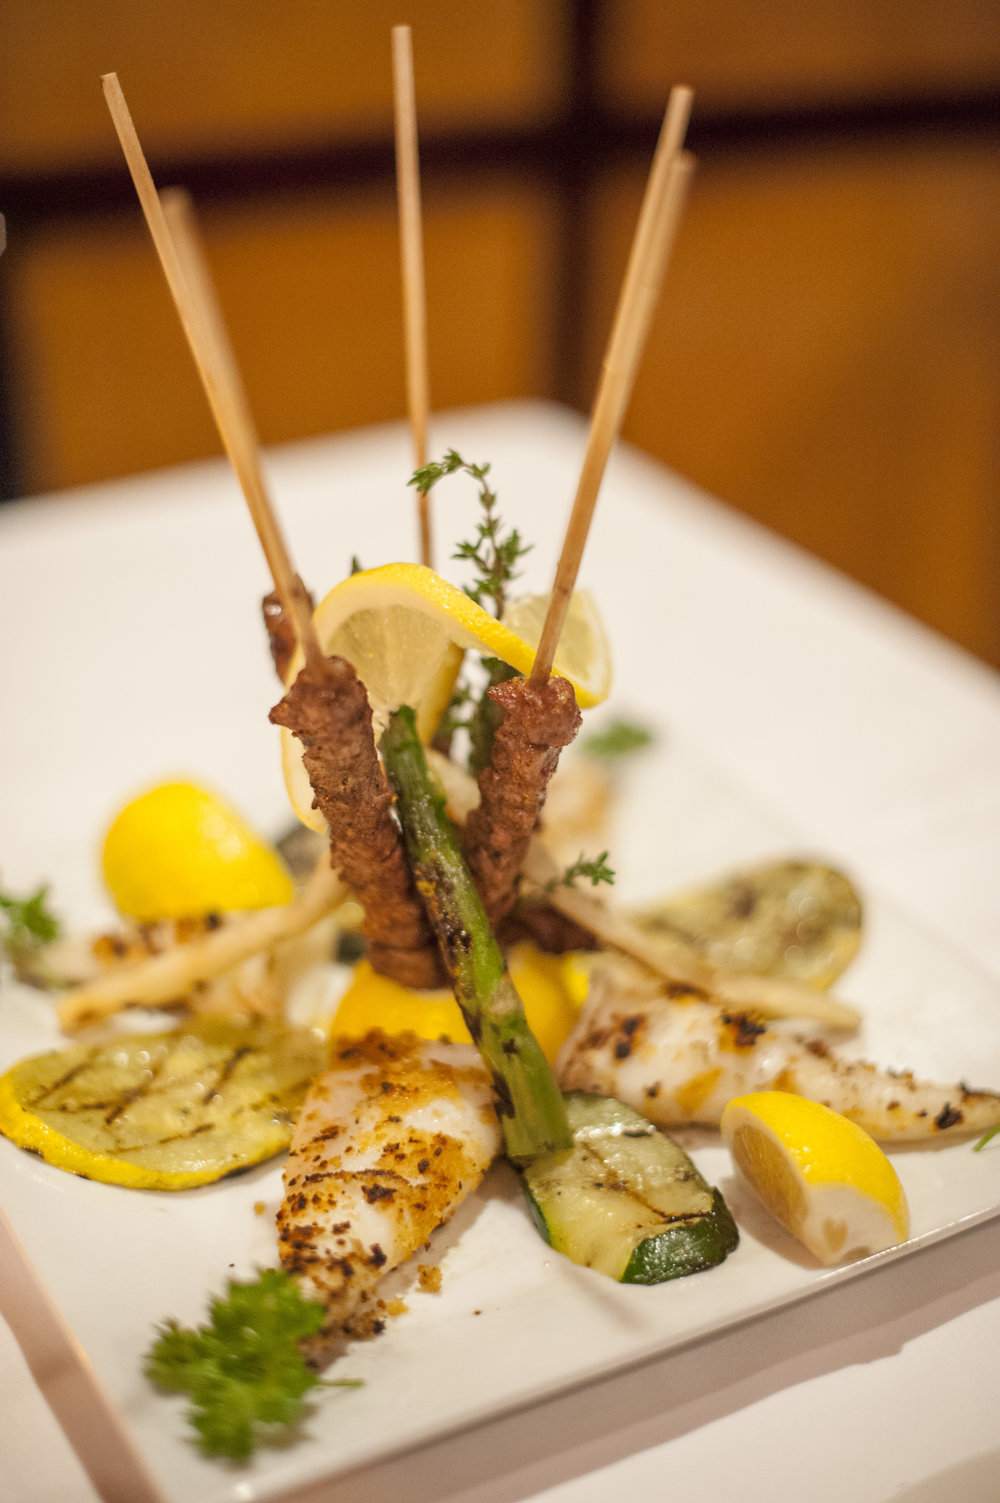 As a starter, the antipasti combination of Lamb Arrosticini and Grilled Calamari are a unique union of land and sea crafted with fresh ingredients and a blend of traditional herbs and spices.